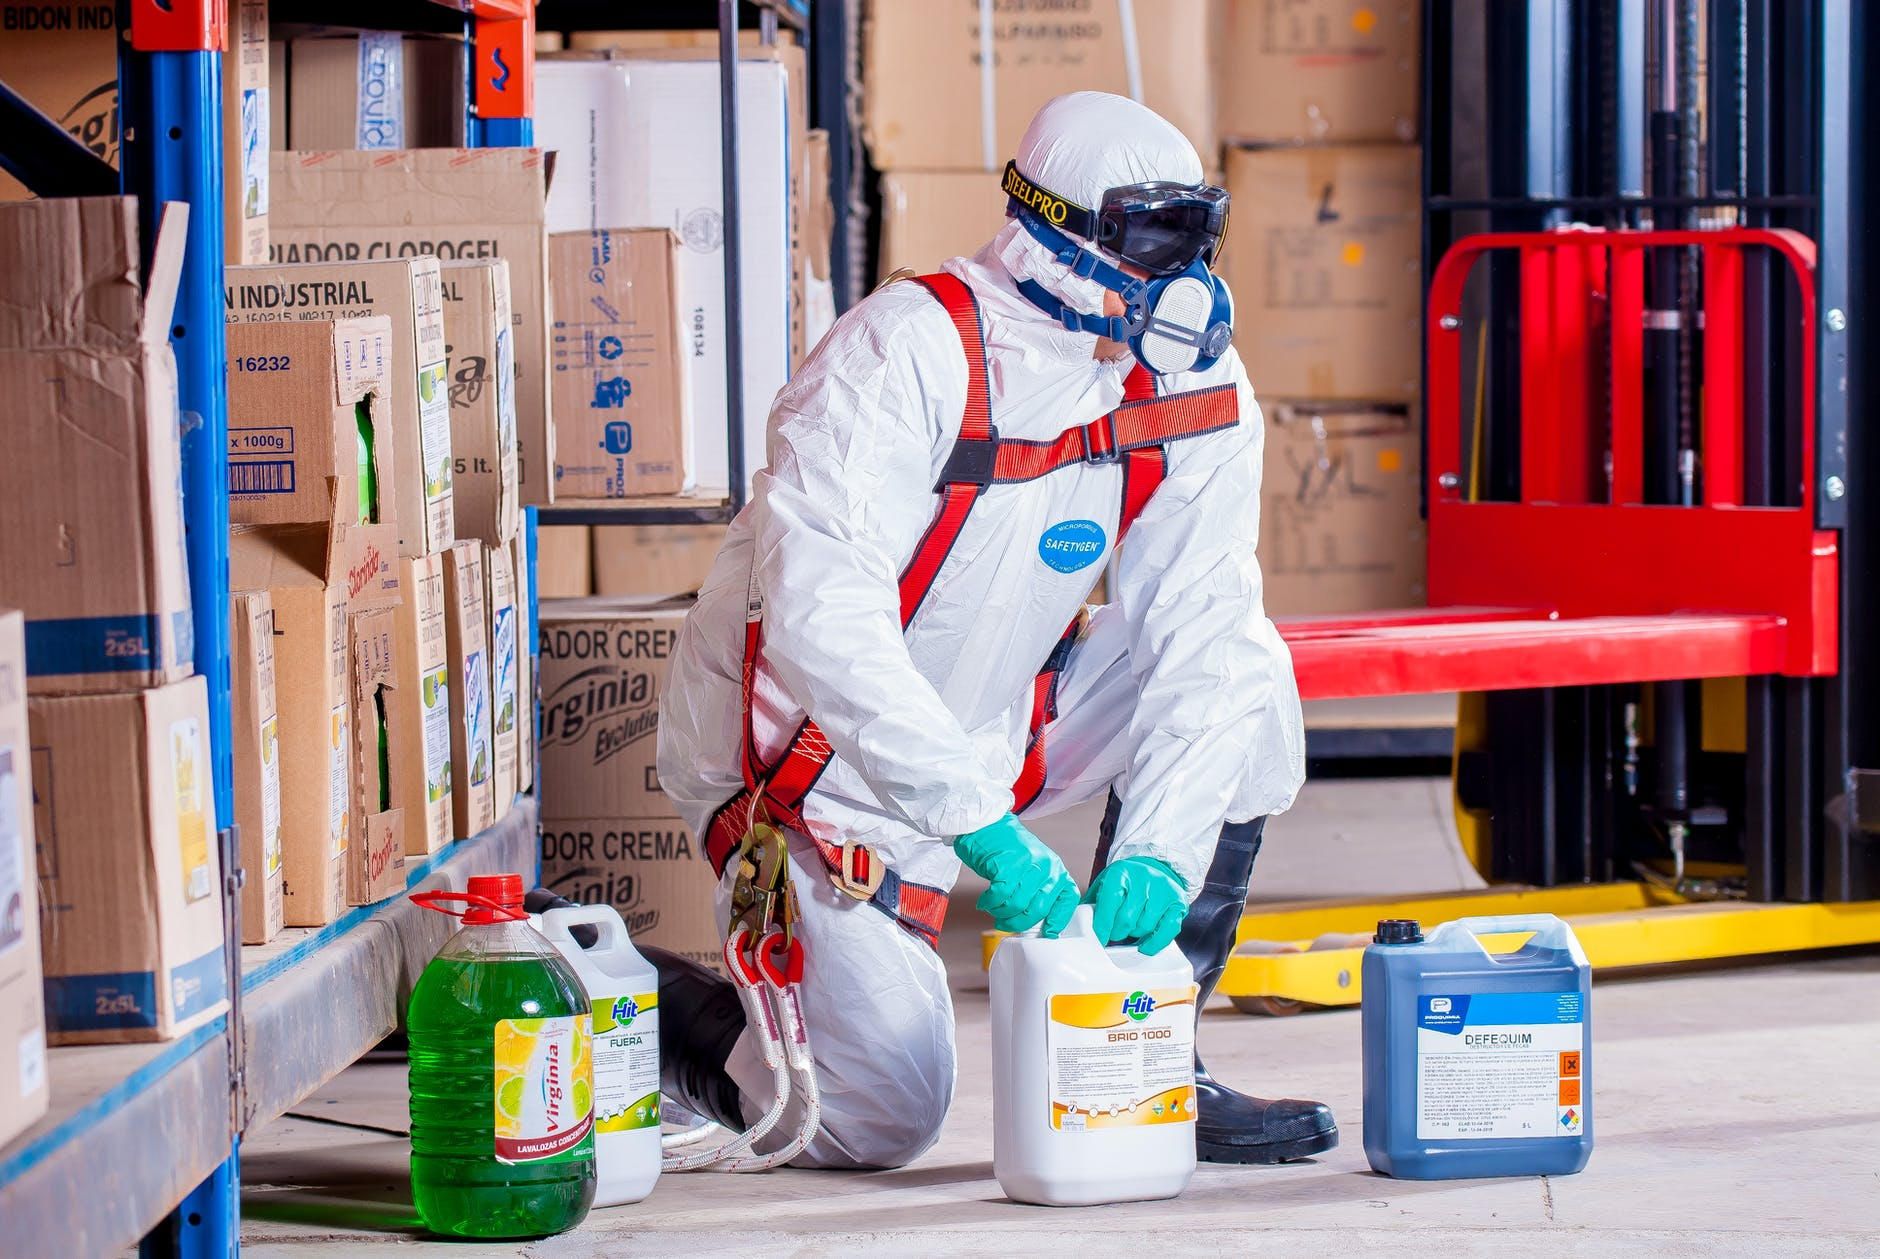 person wearing white suit holding weed killers